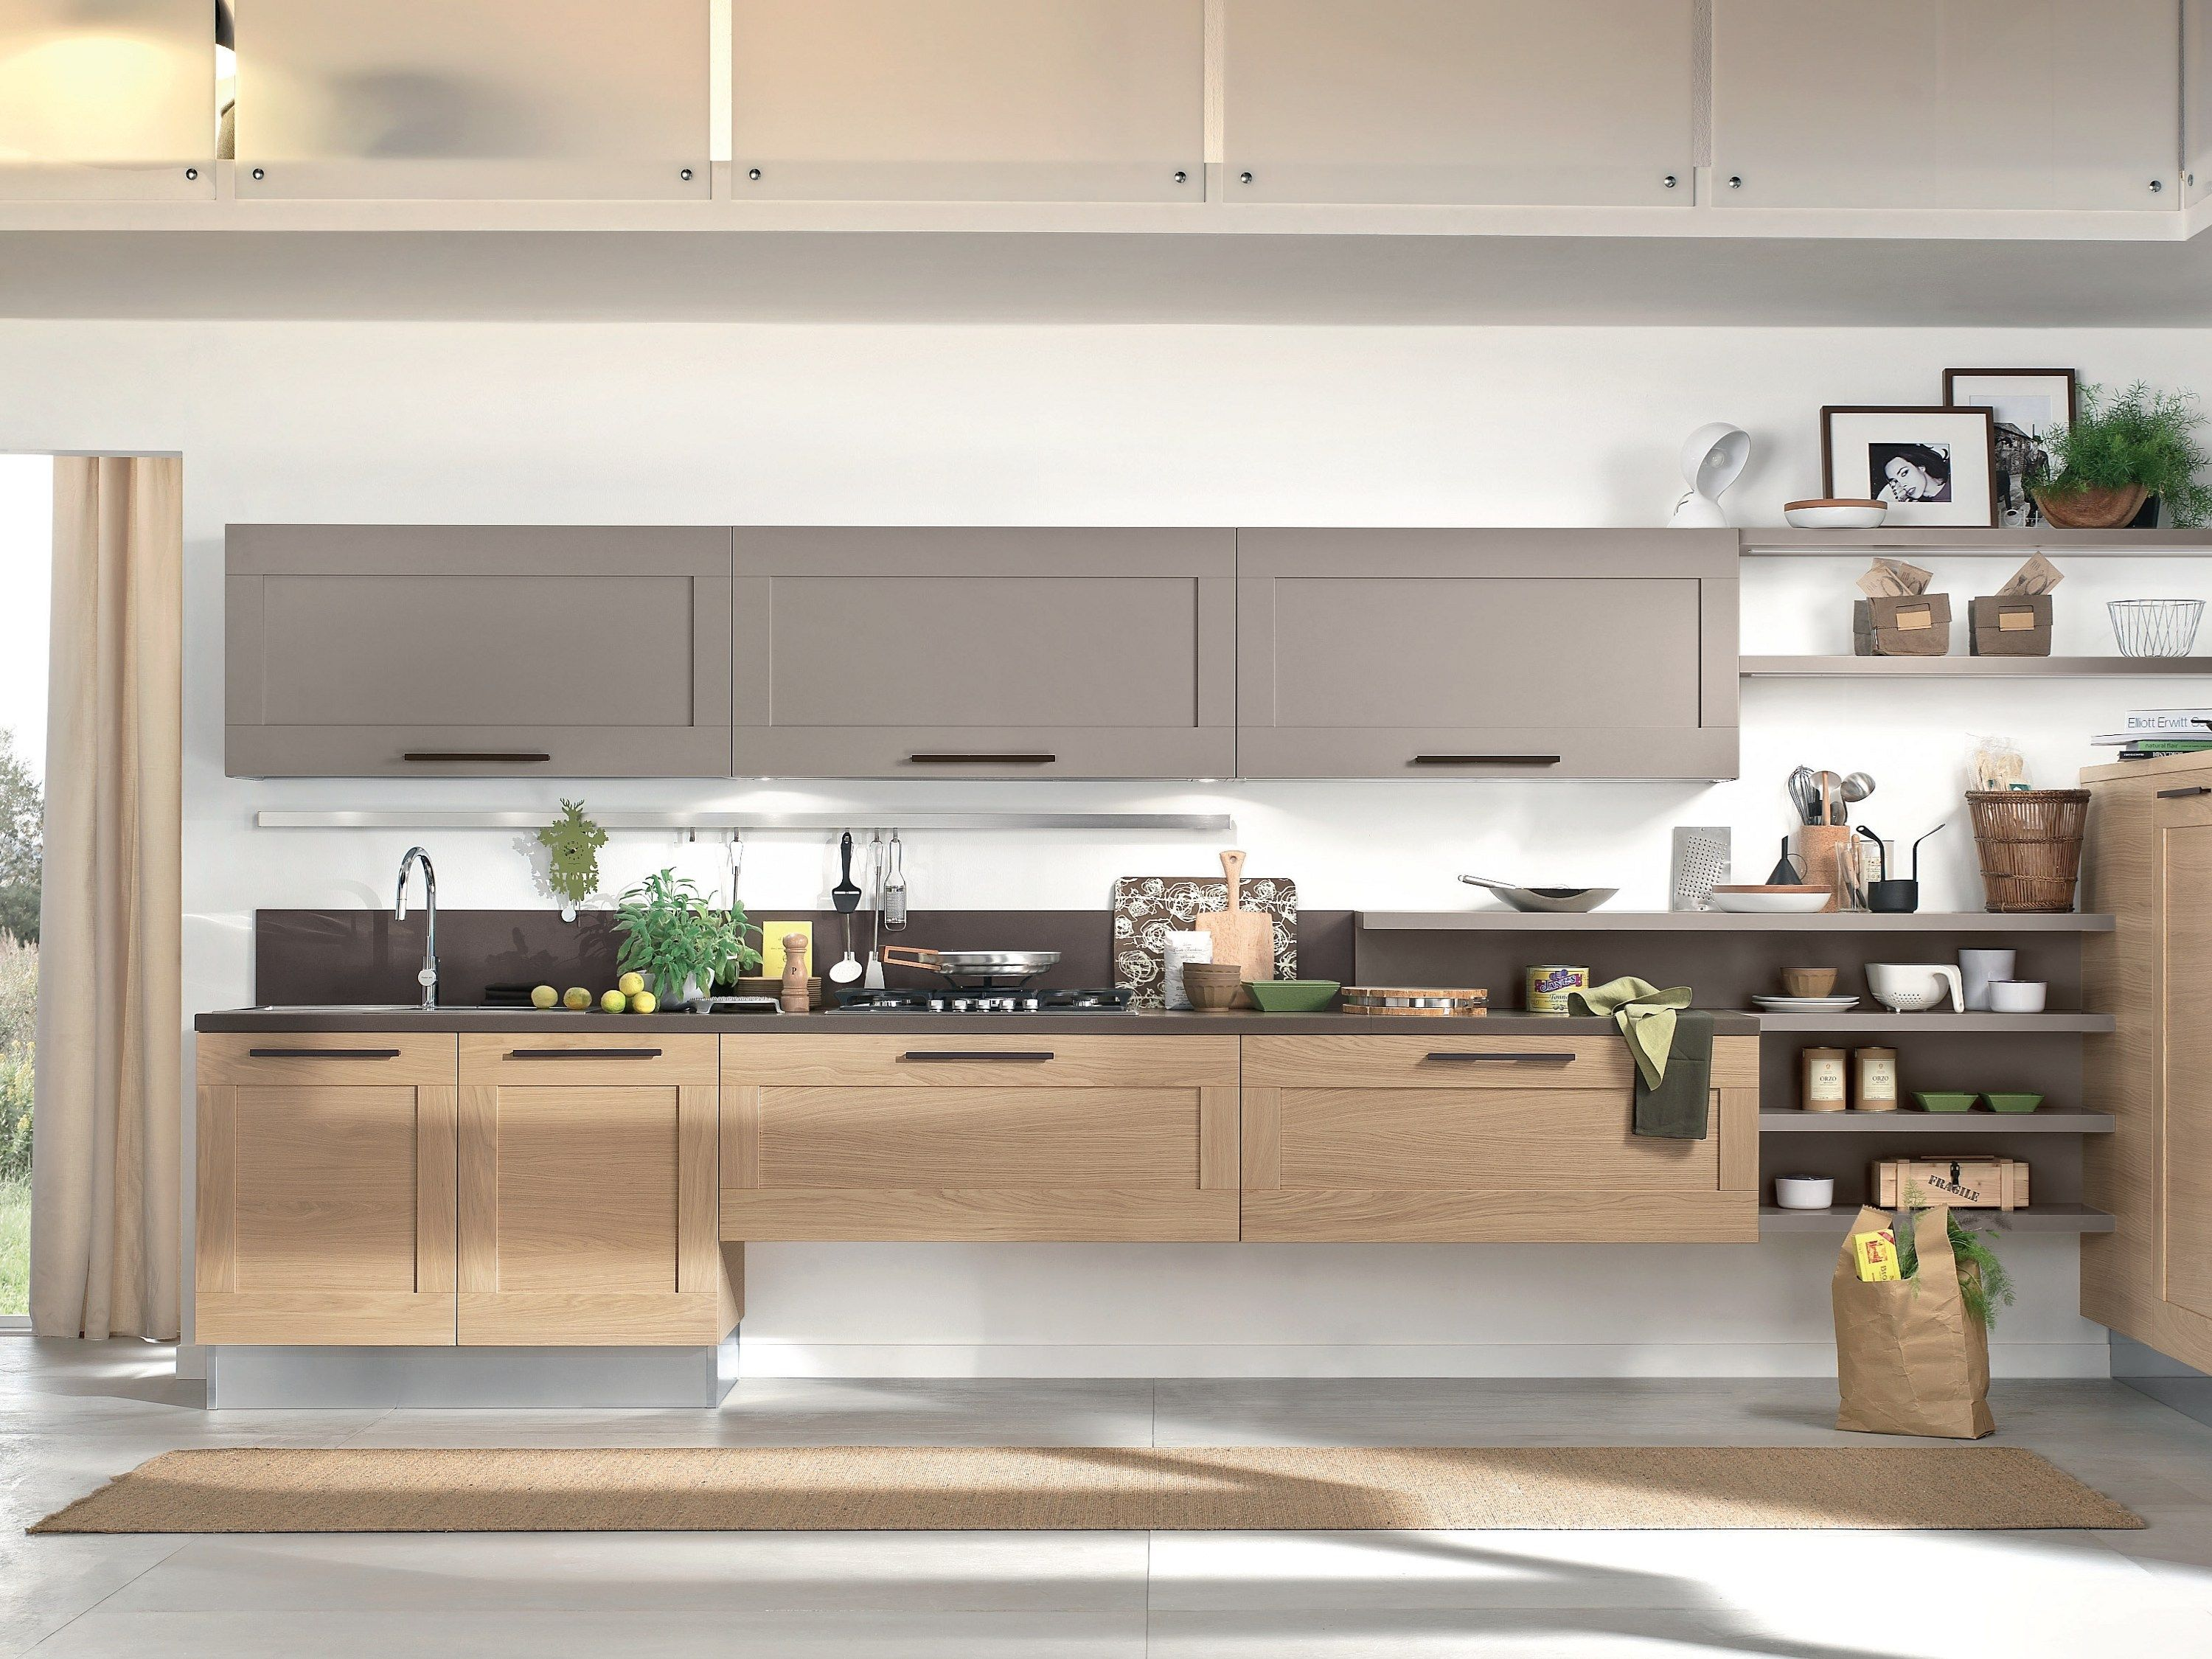 Wooden kitchen with handles Gallery Collection by Cucine Lube ...